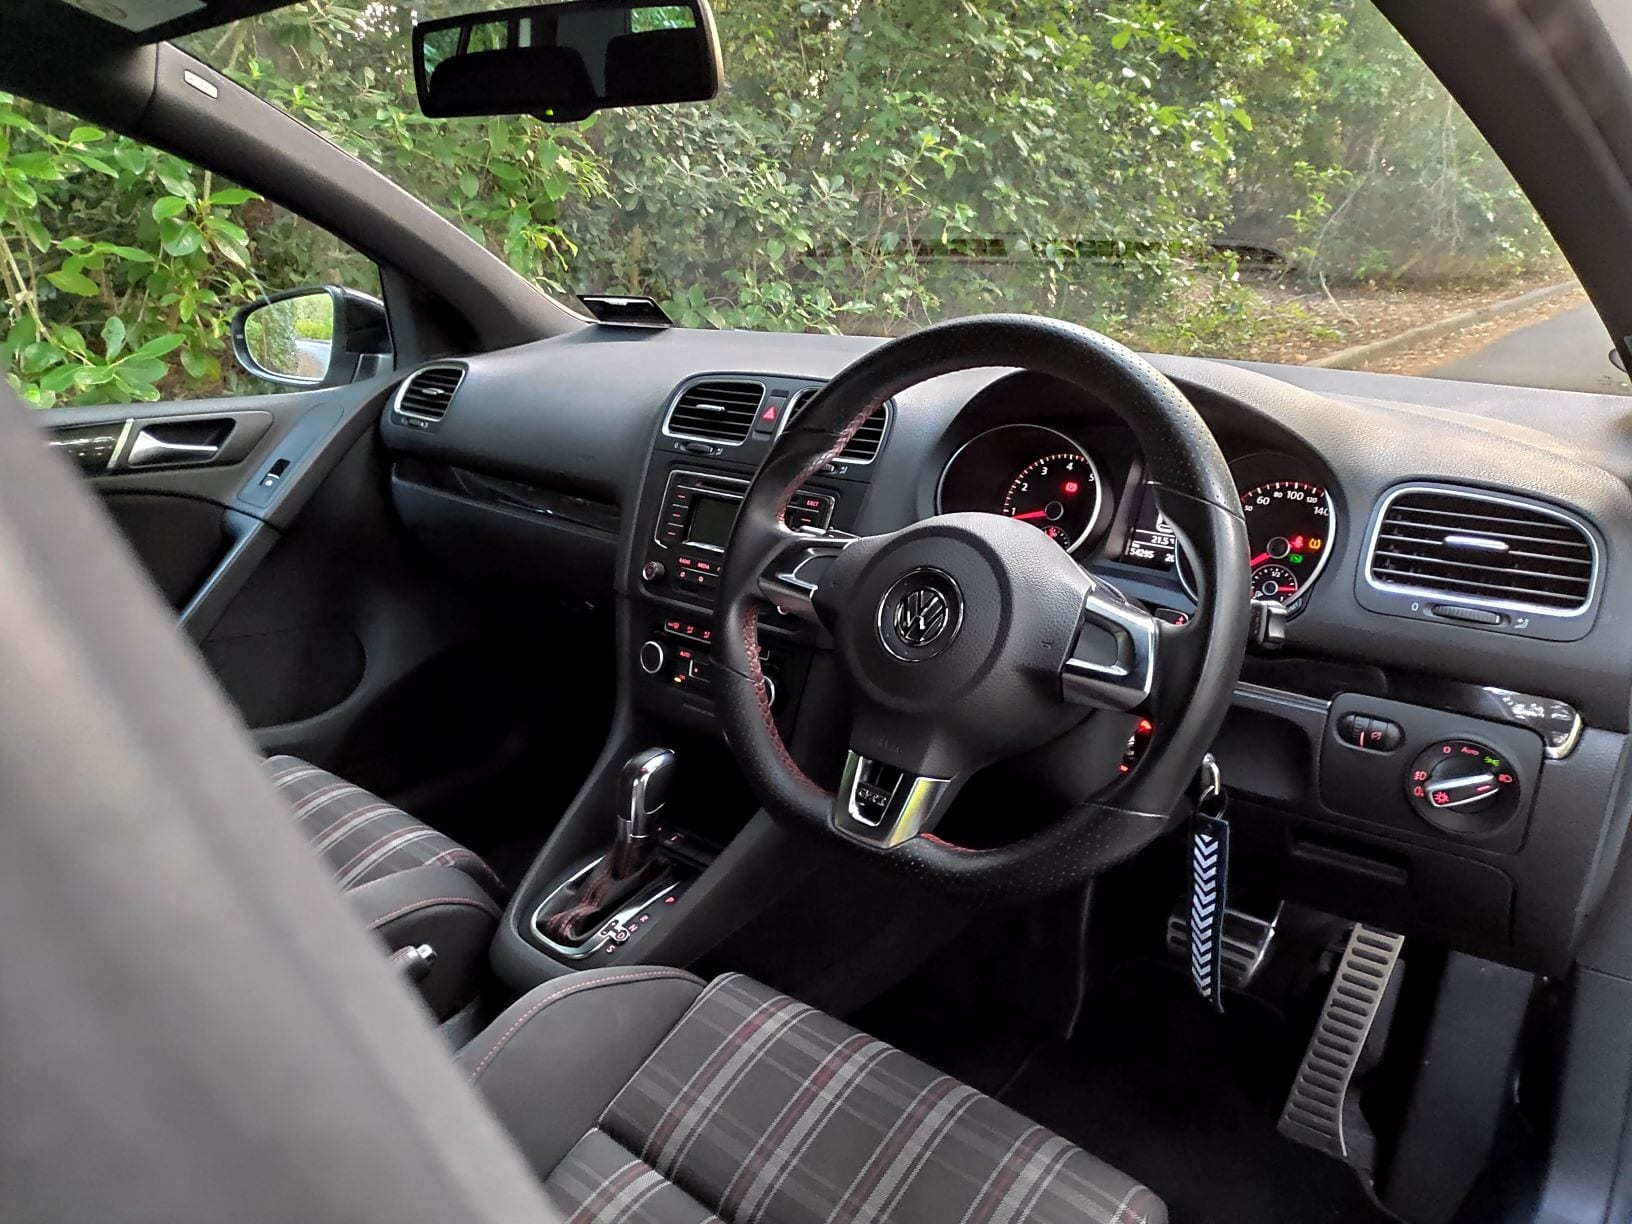 Look at those tartan seats and the red stitching, how could you not want this in your life?! The interior of the Volkswagen Golf GTI.